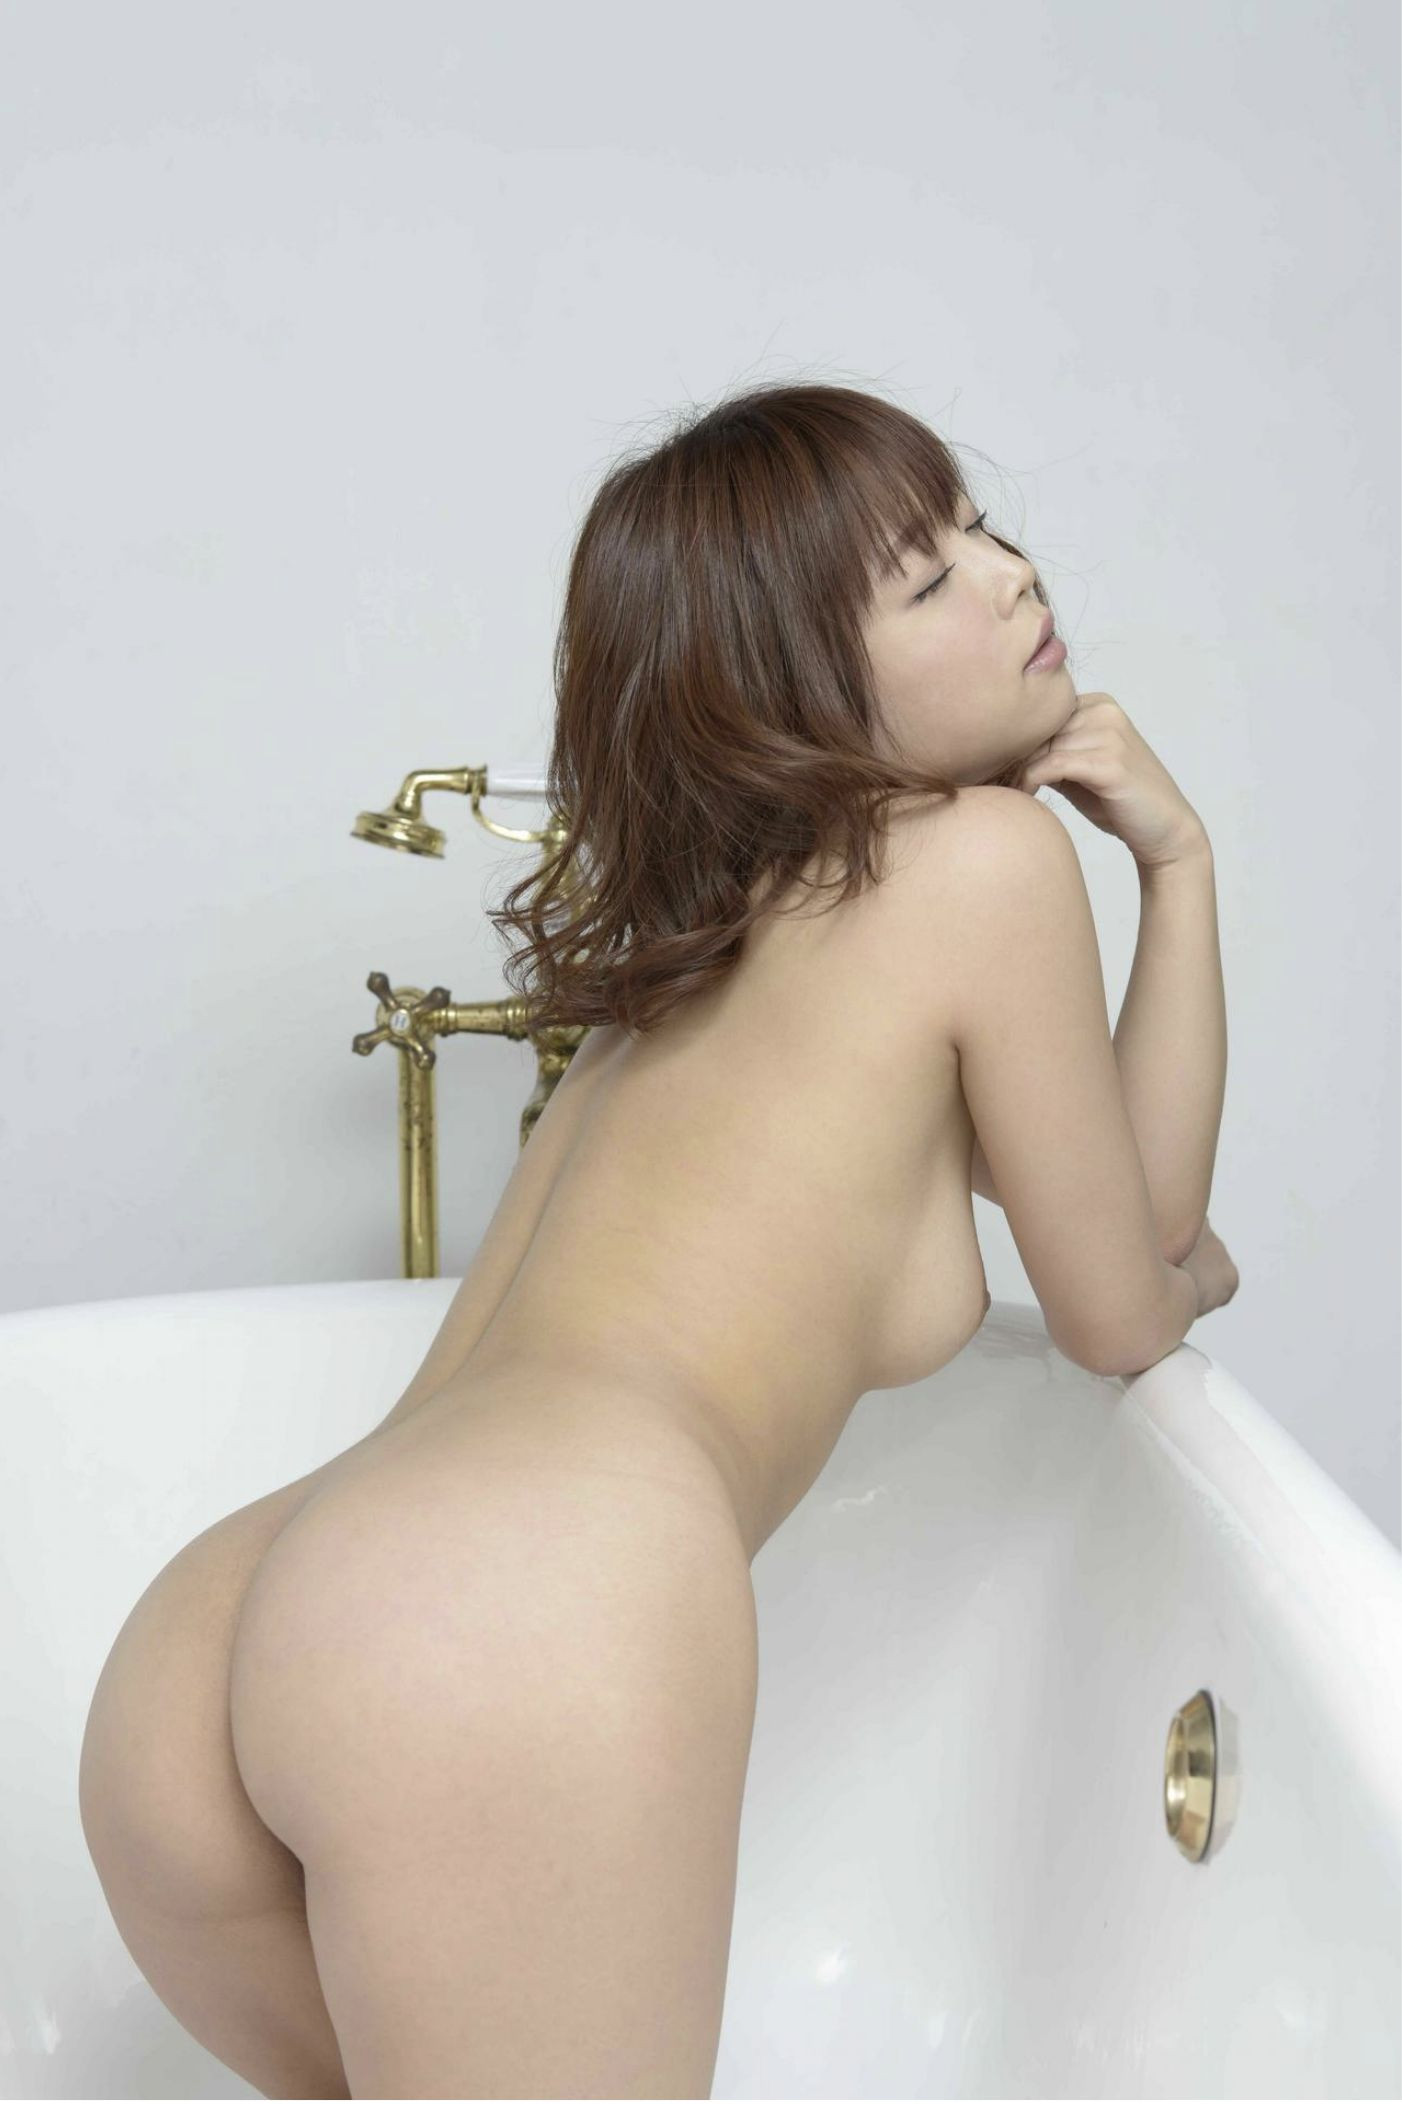 SOFT ON DEMAND GRAVURE COLLECTION 紗倉まな01 photo 060